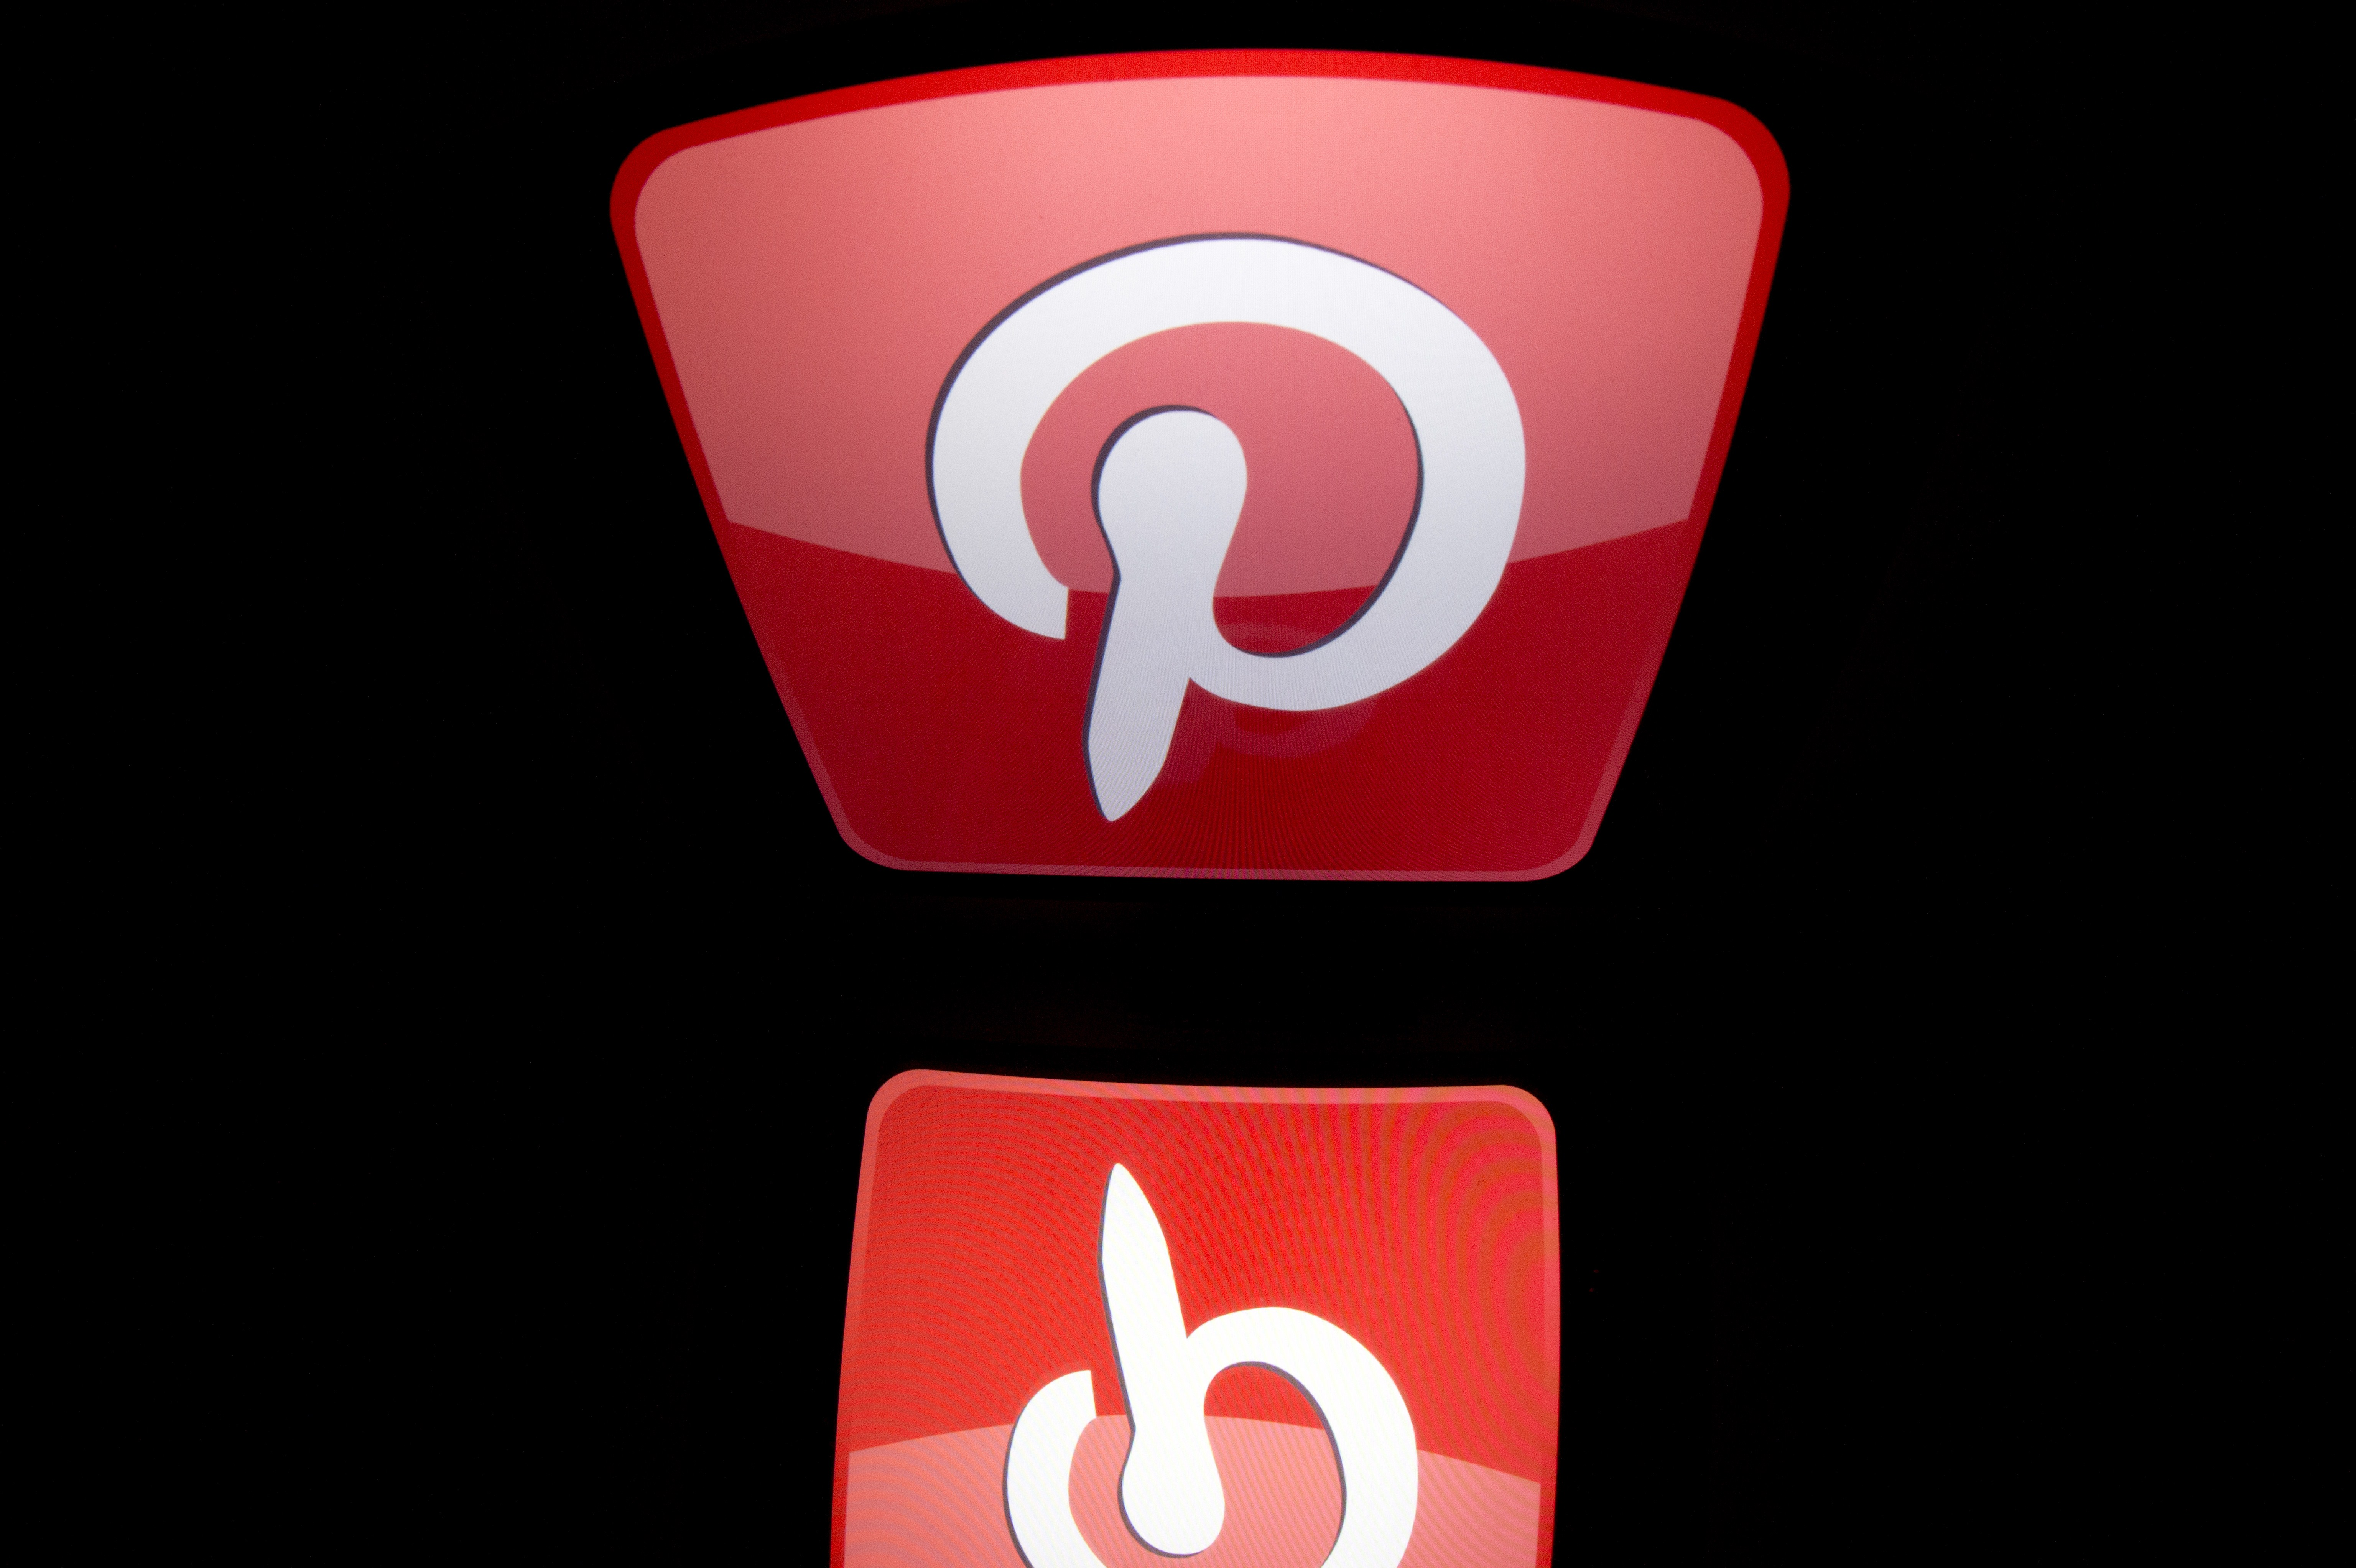 The logo of mobile app  Pinterest  is displayed on a tablet on Jan. 2, 2014 in Paris.